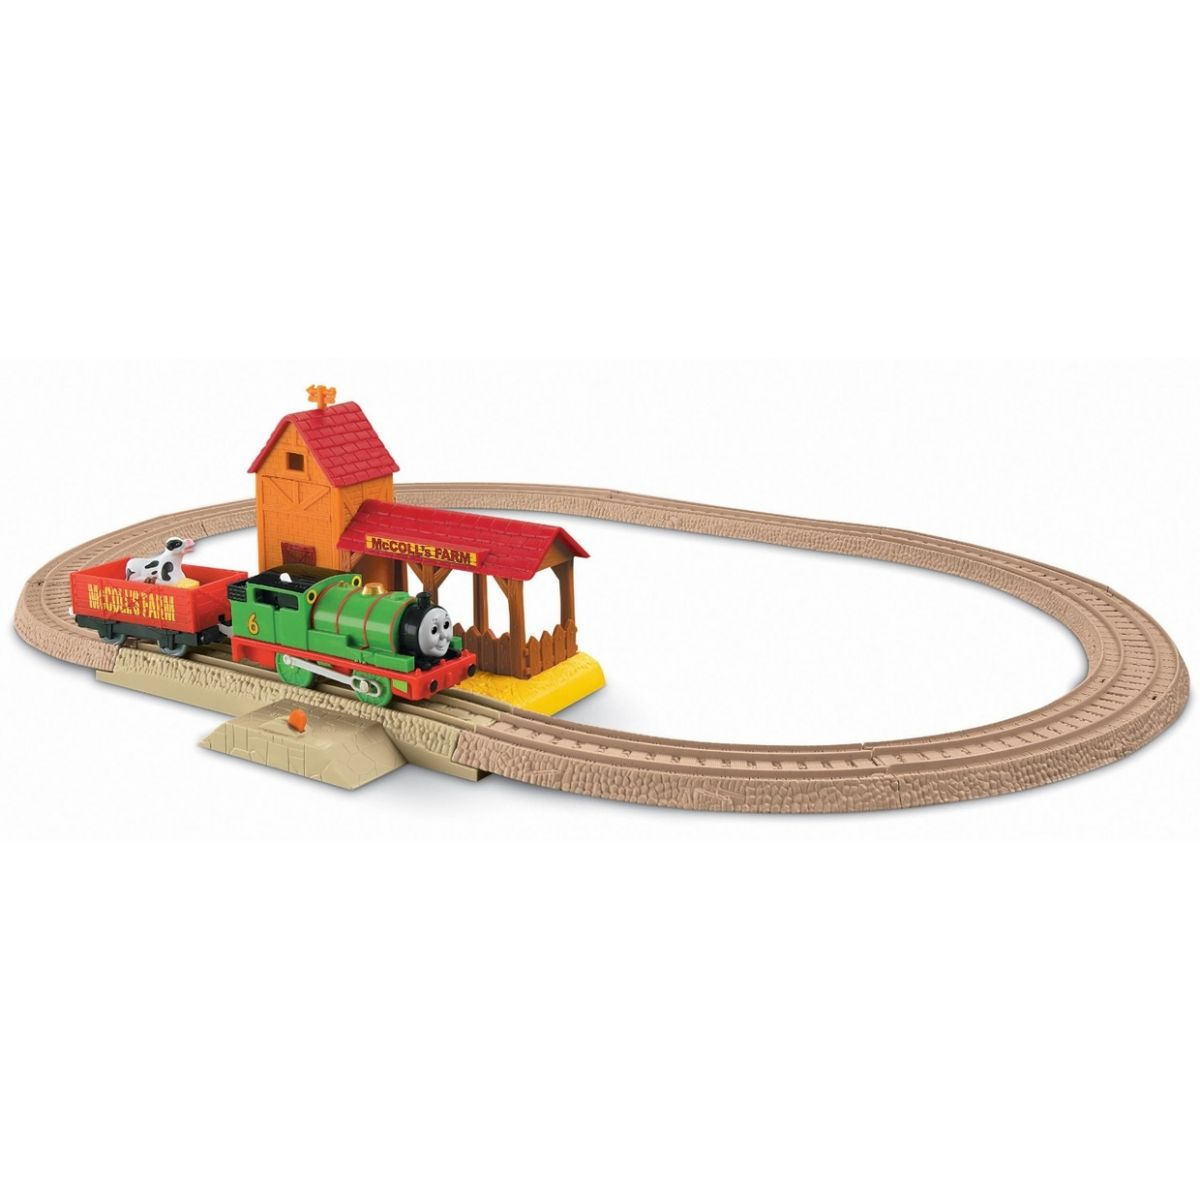 Mašinka Tomáš TrackMaster Sada - Percys day at the farm